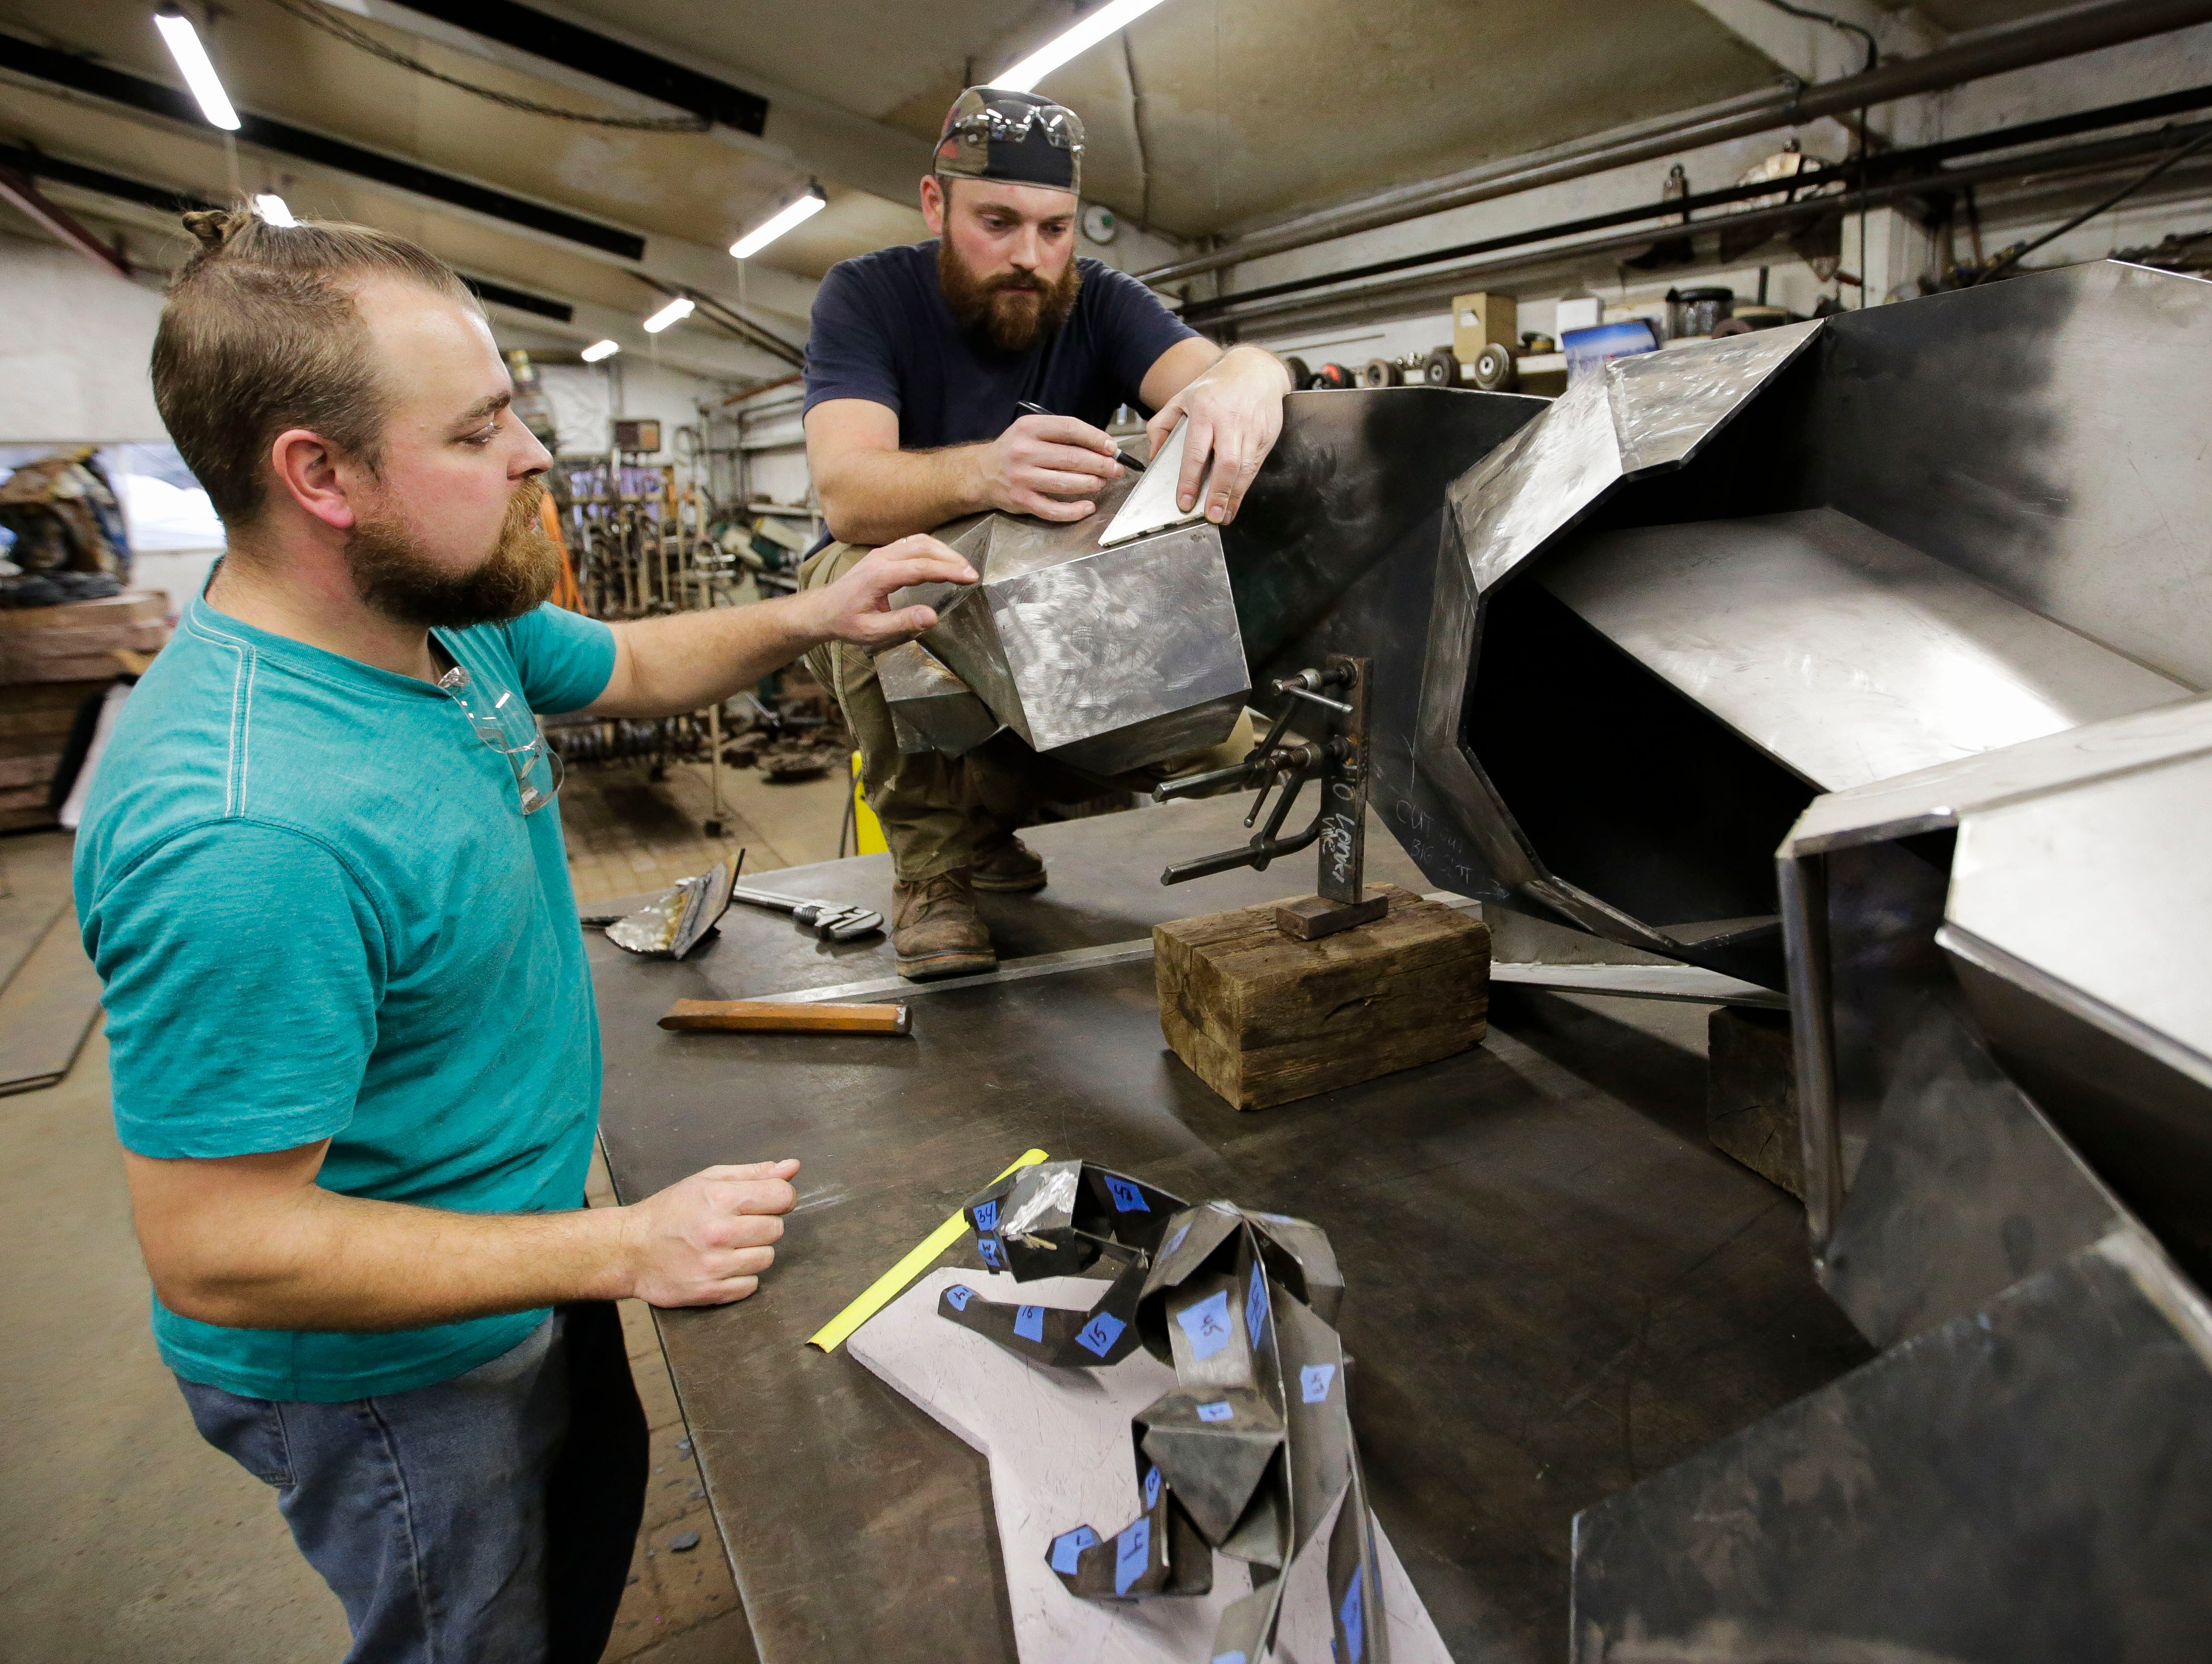 Vincent Kochanowski and August Kochanowski take measurements on their SPASH Panther sculpture on Tuesday, December 25, 2018, at Boleslaw Kochanowski's workshop in Junction City, Wis. The sculpture will be installed at SPASH upon completion.